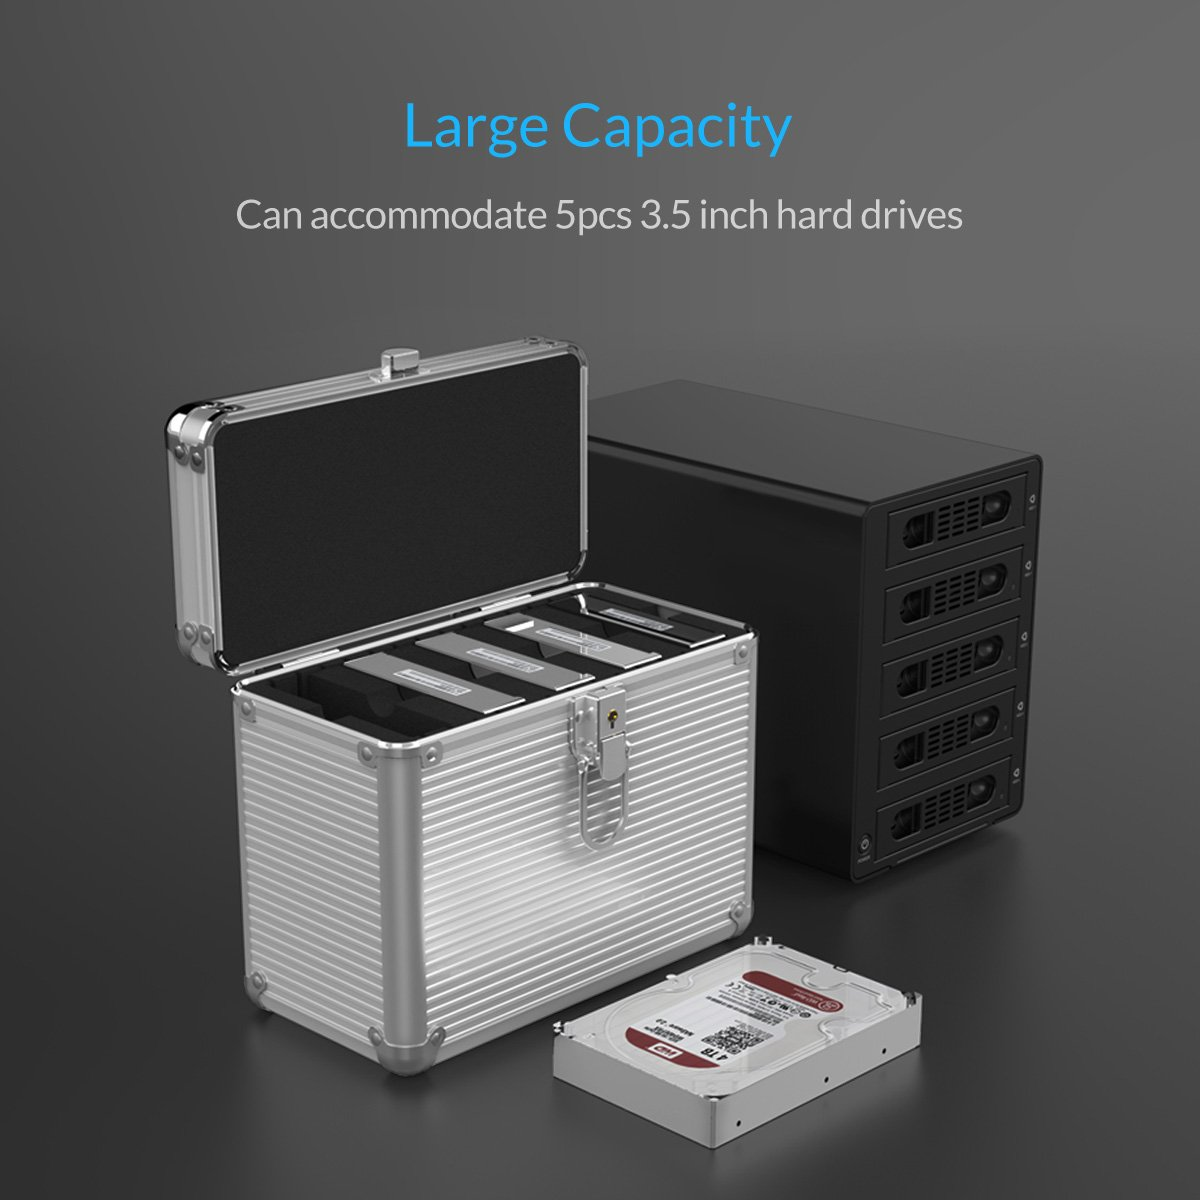 Orico Aluminum 35 Inch Hard Drive Protective 5 Bay 1bay Hdd Protection Case Ps35 Storage Box With Lock Moisture Proof Water Resistant Static Perfect For Media